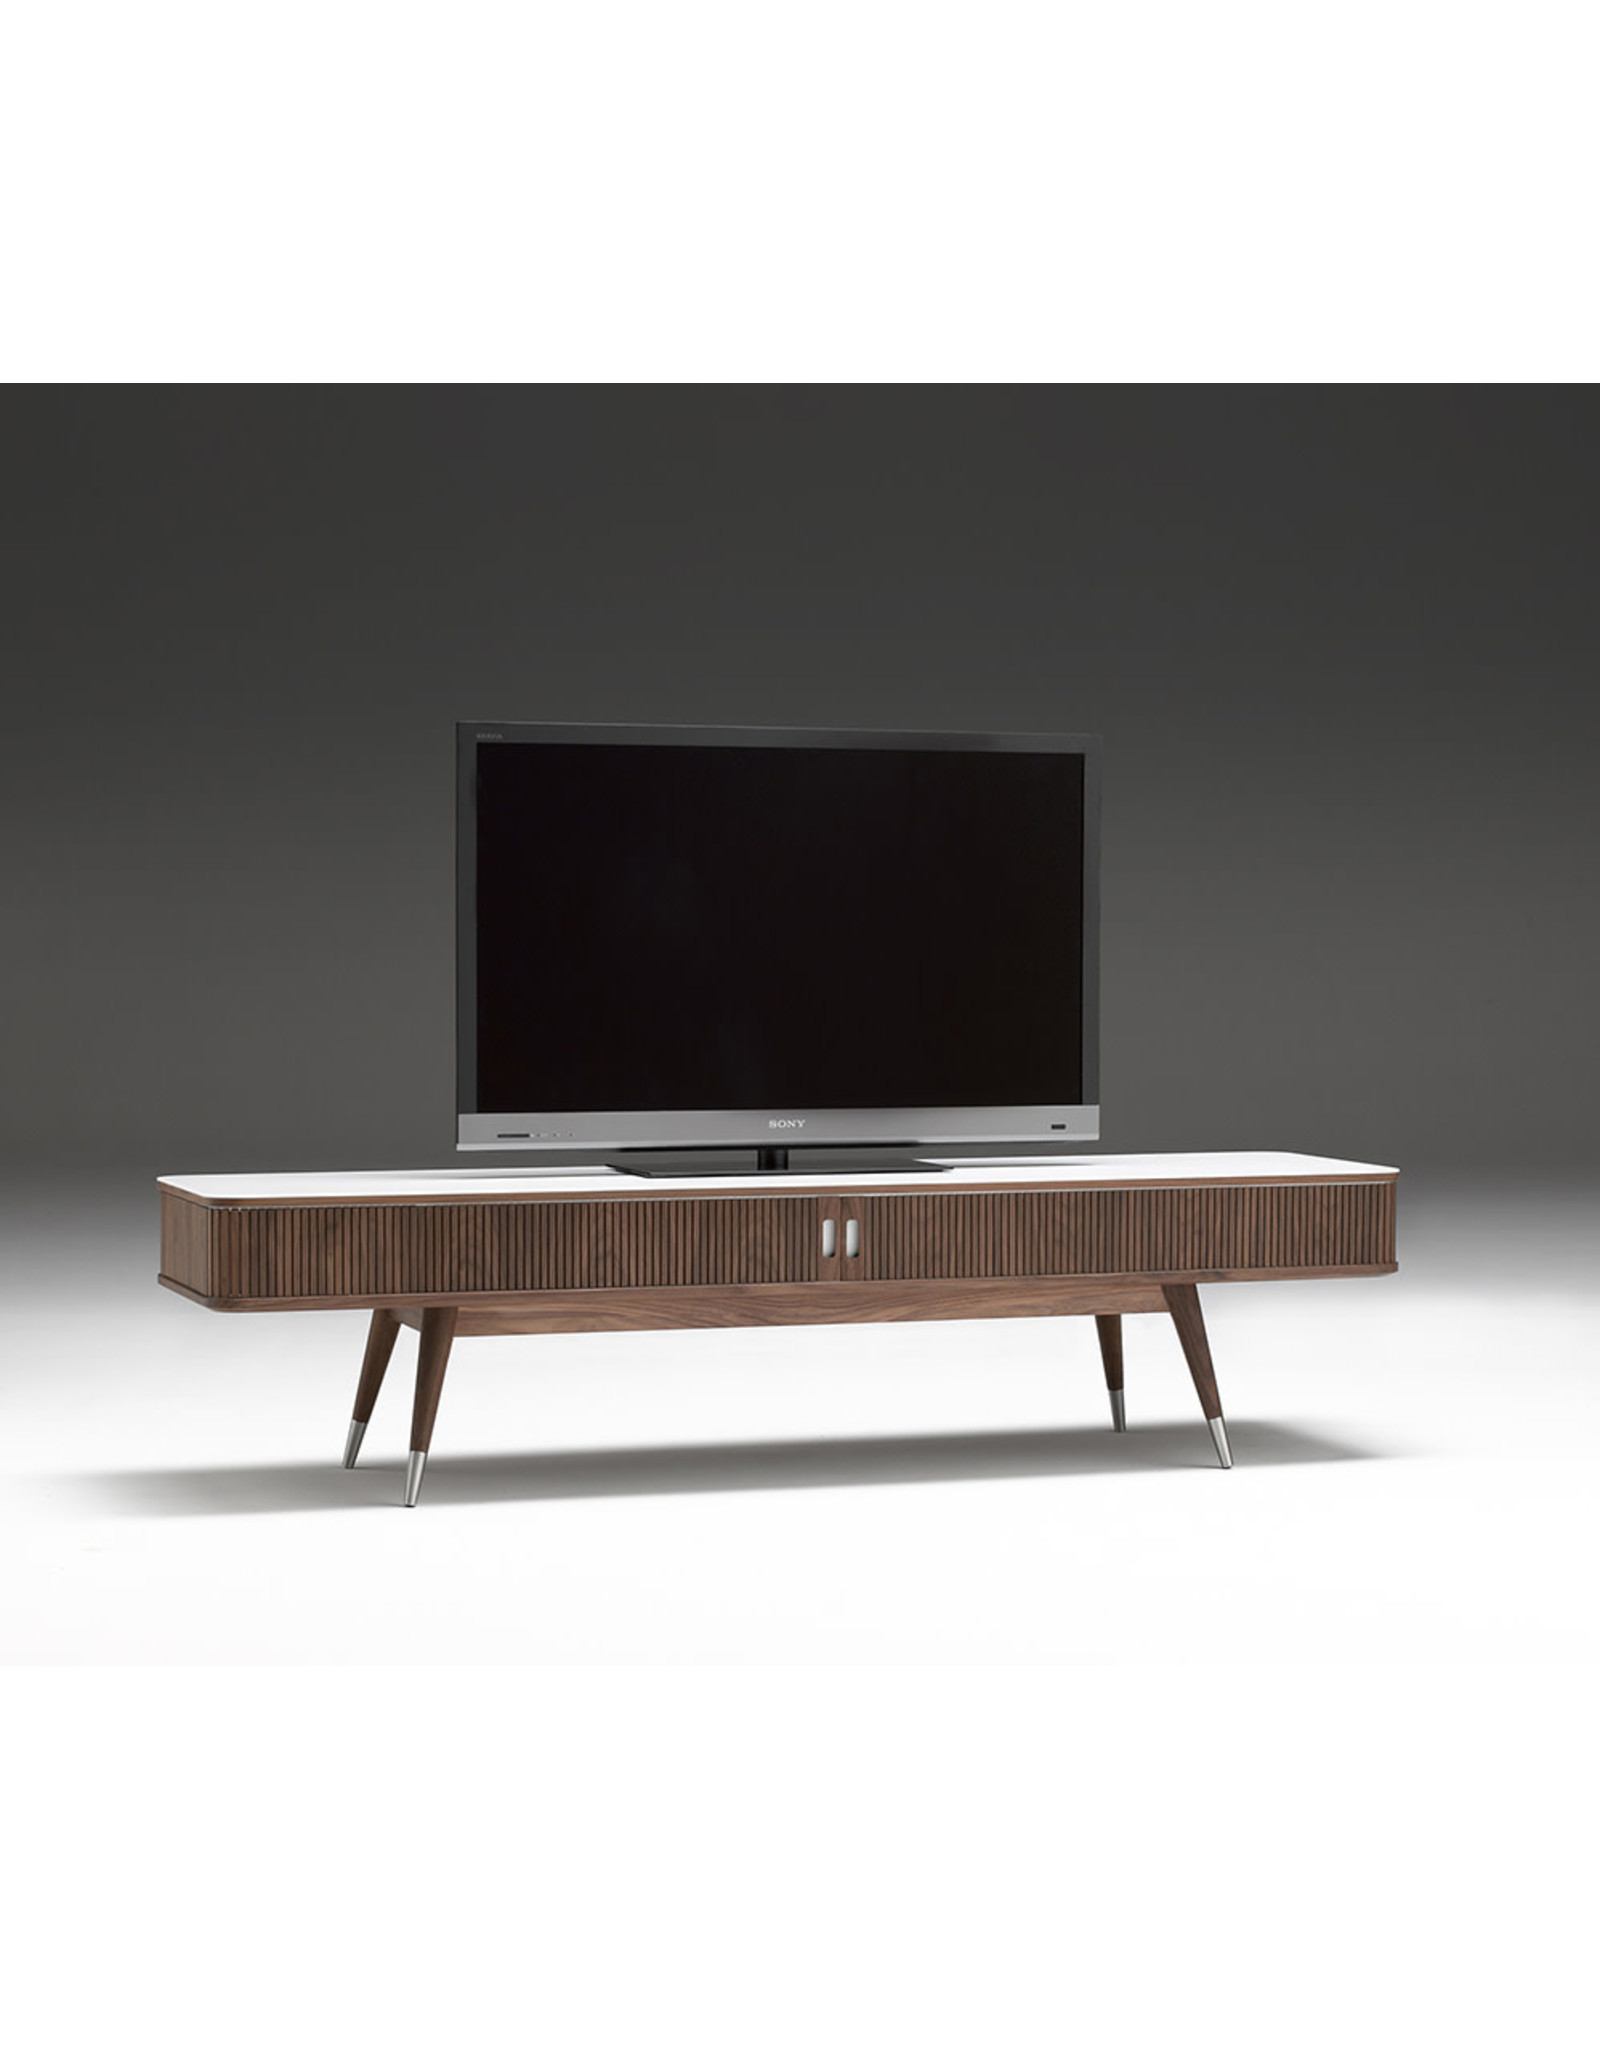 AK 2720 TV UNIT IN WALNUT WITH STAINLESS STEEL CAPS